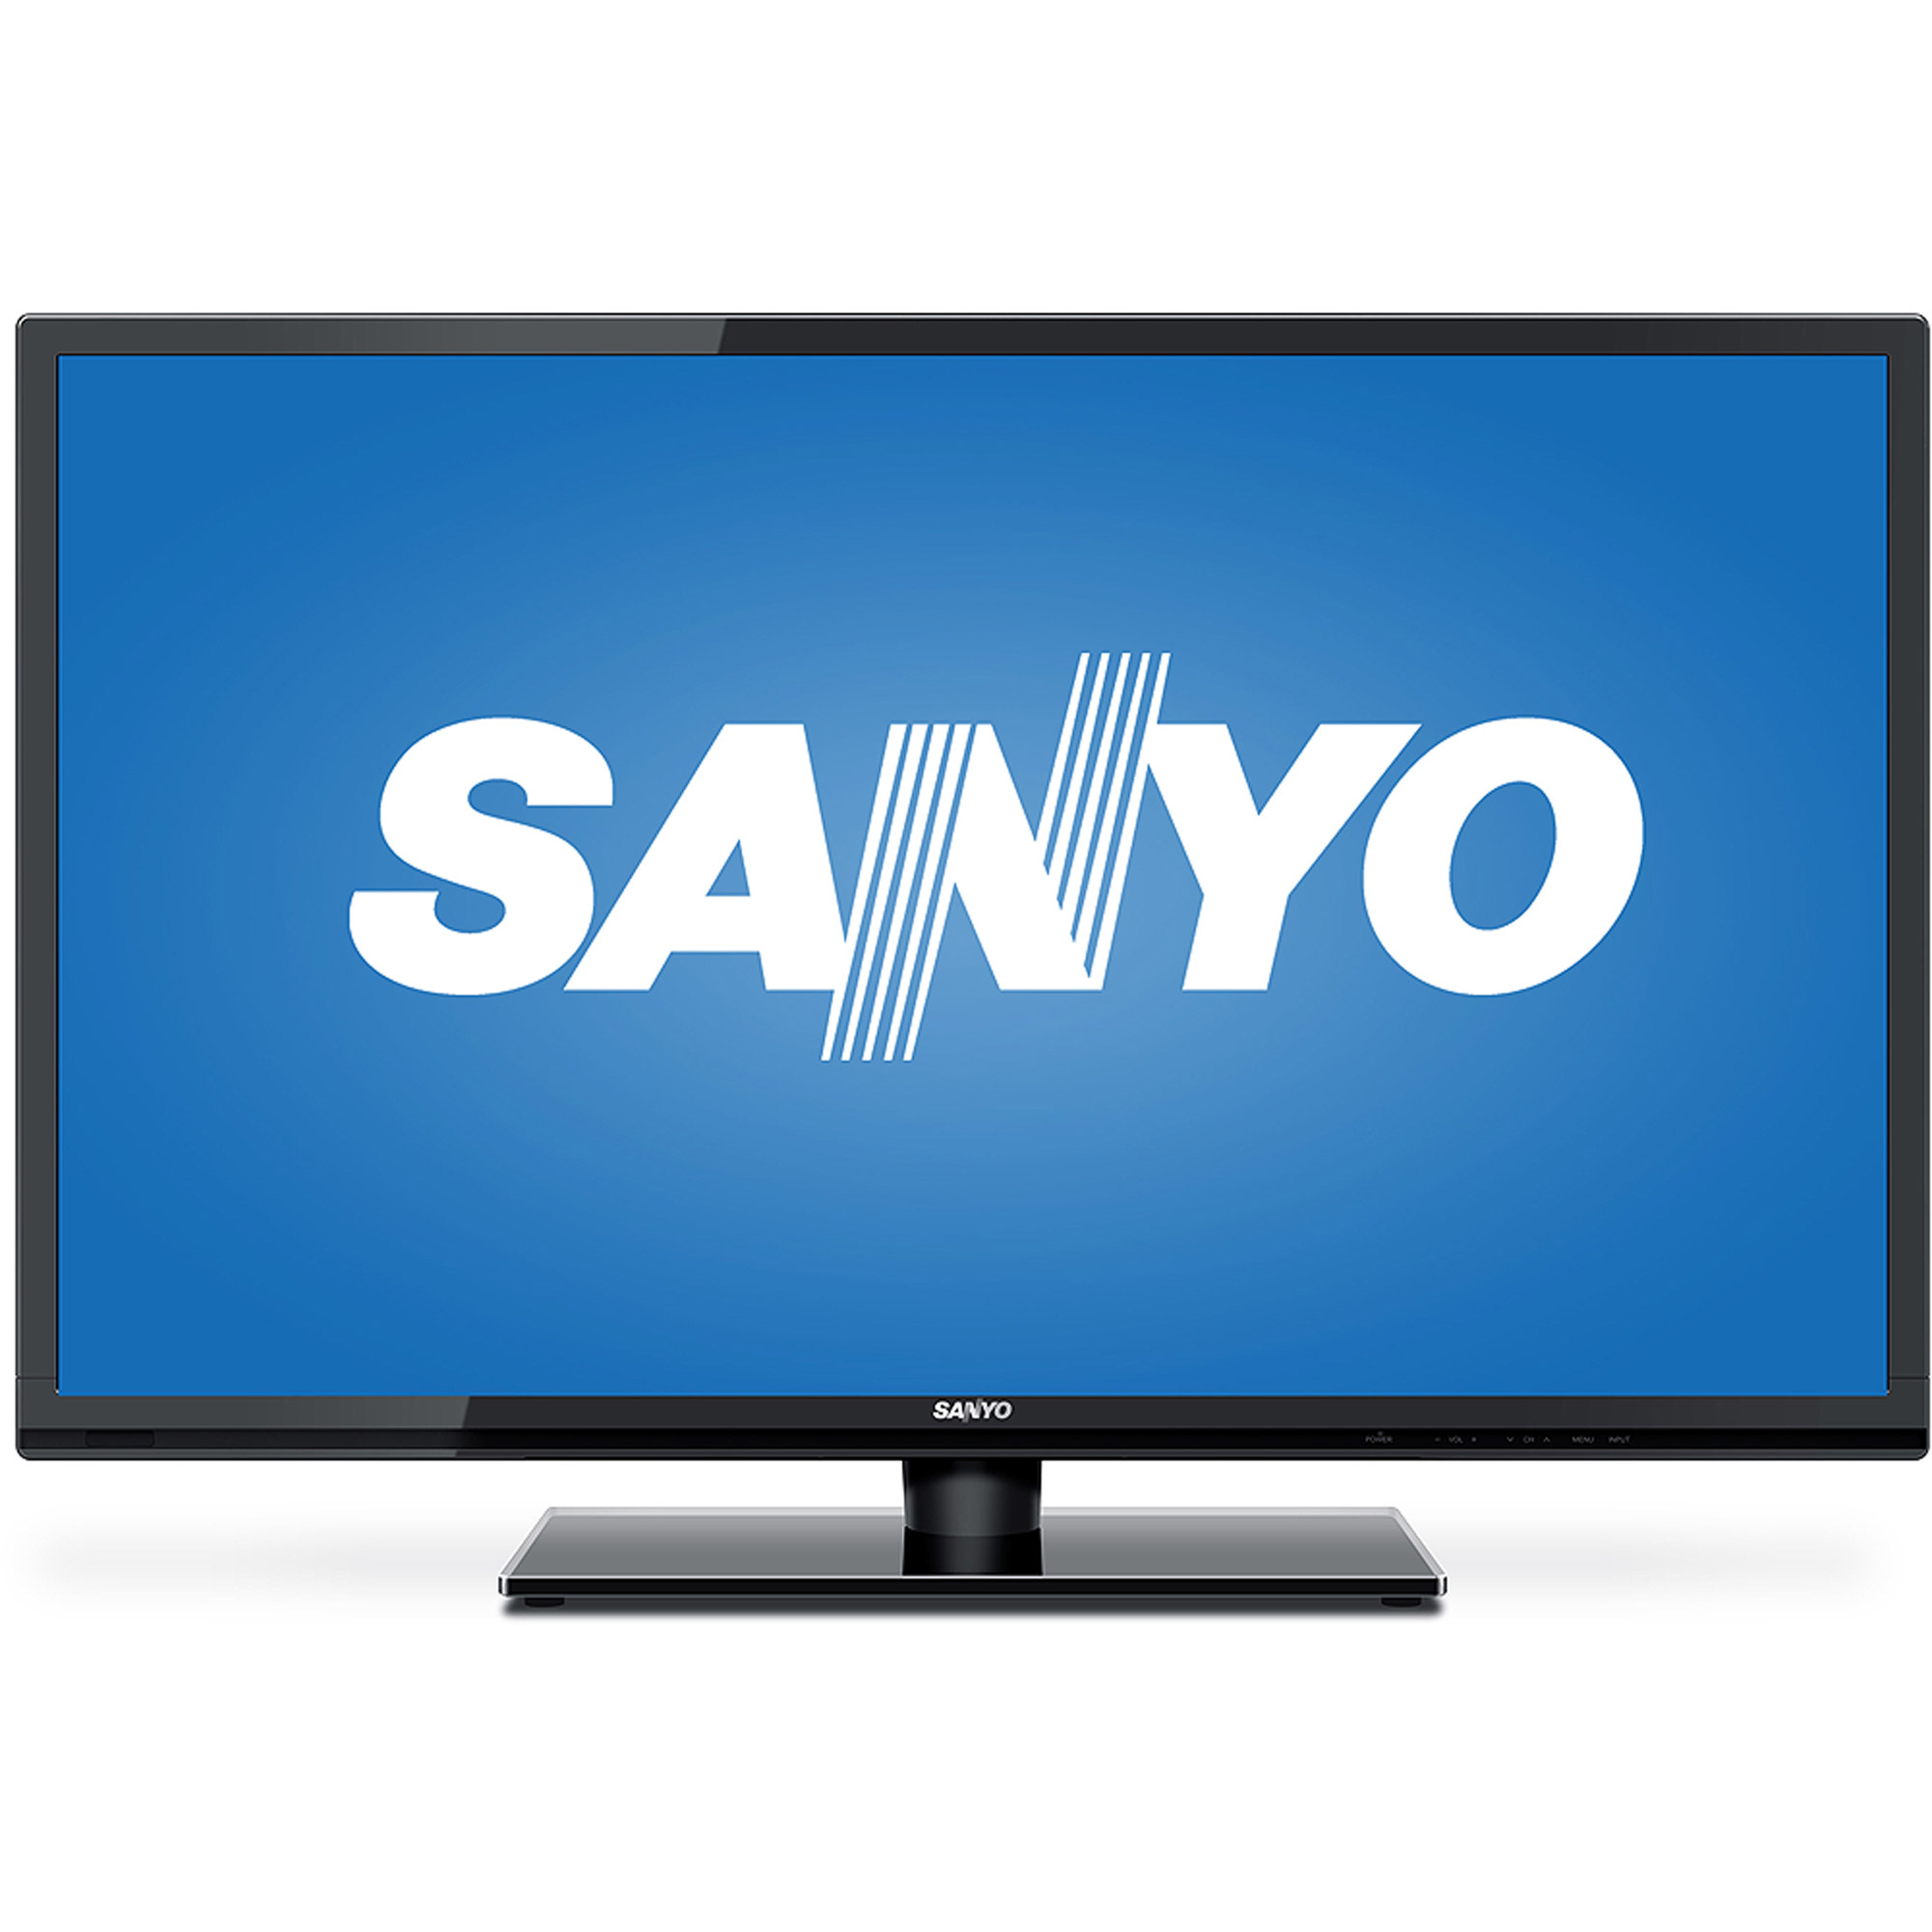 samsung 32 class led hdtv with 720p resolution vs 1080p